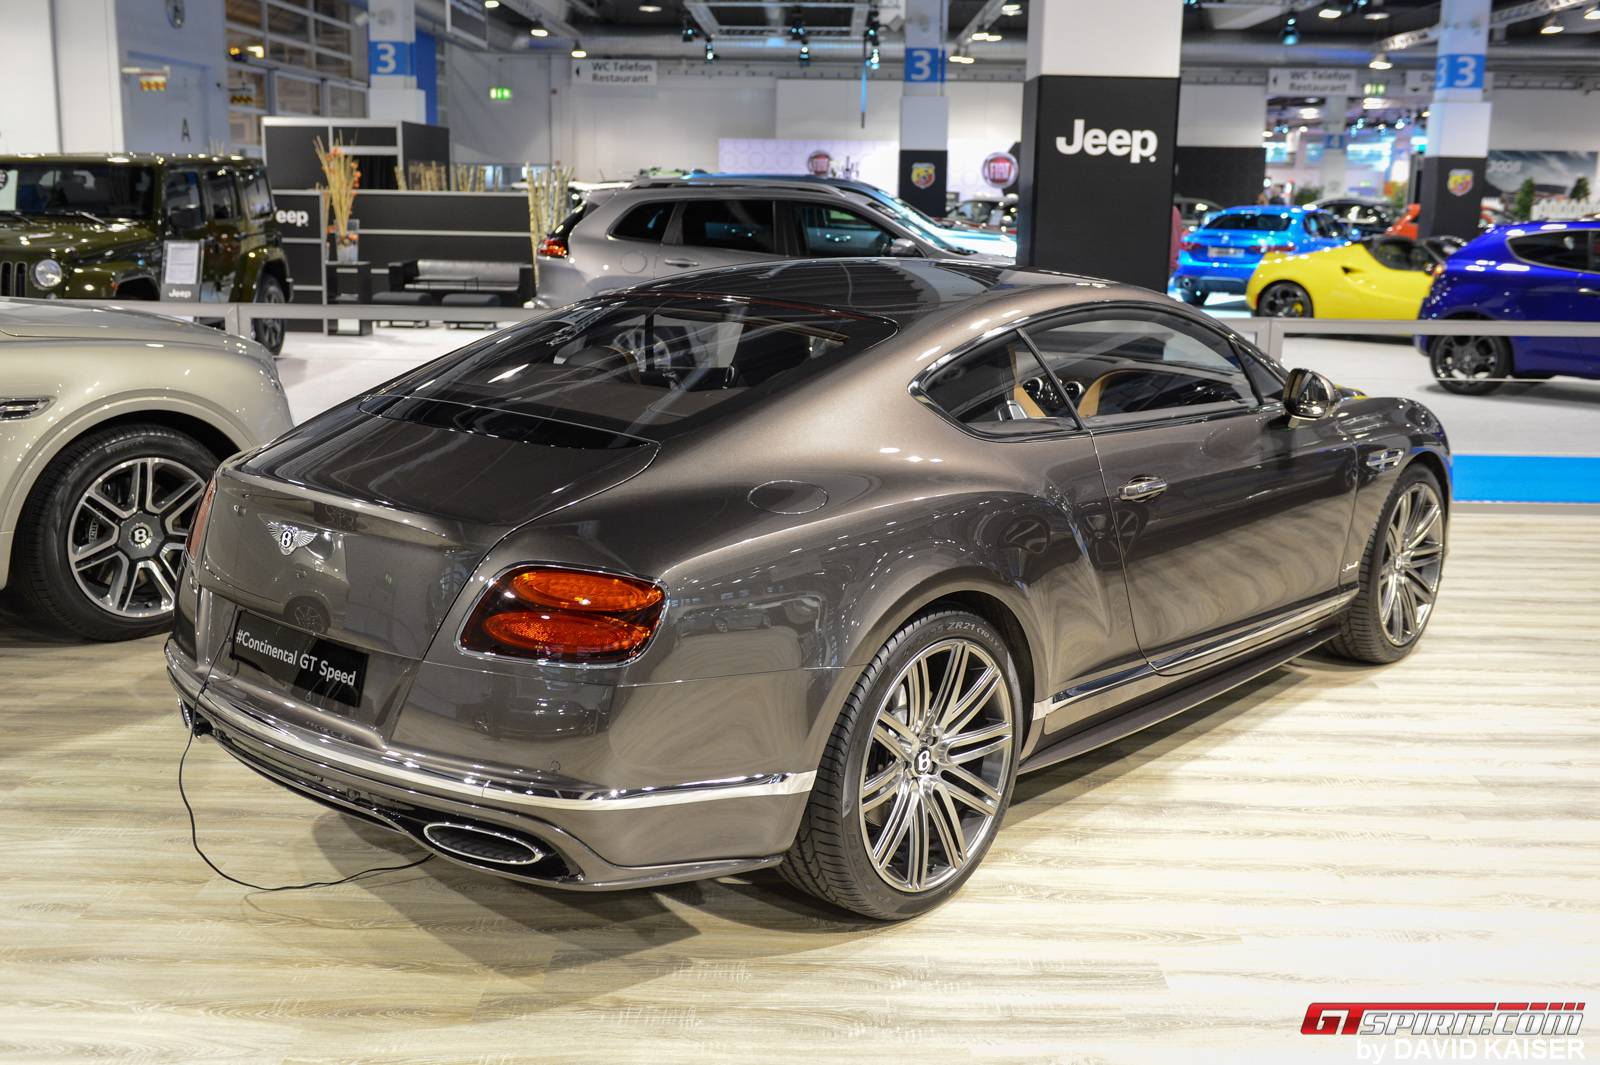 100 Bentley Jeep Used 2006 Bentley Continental Gt For Sale Goderich On Licensed Bentley